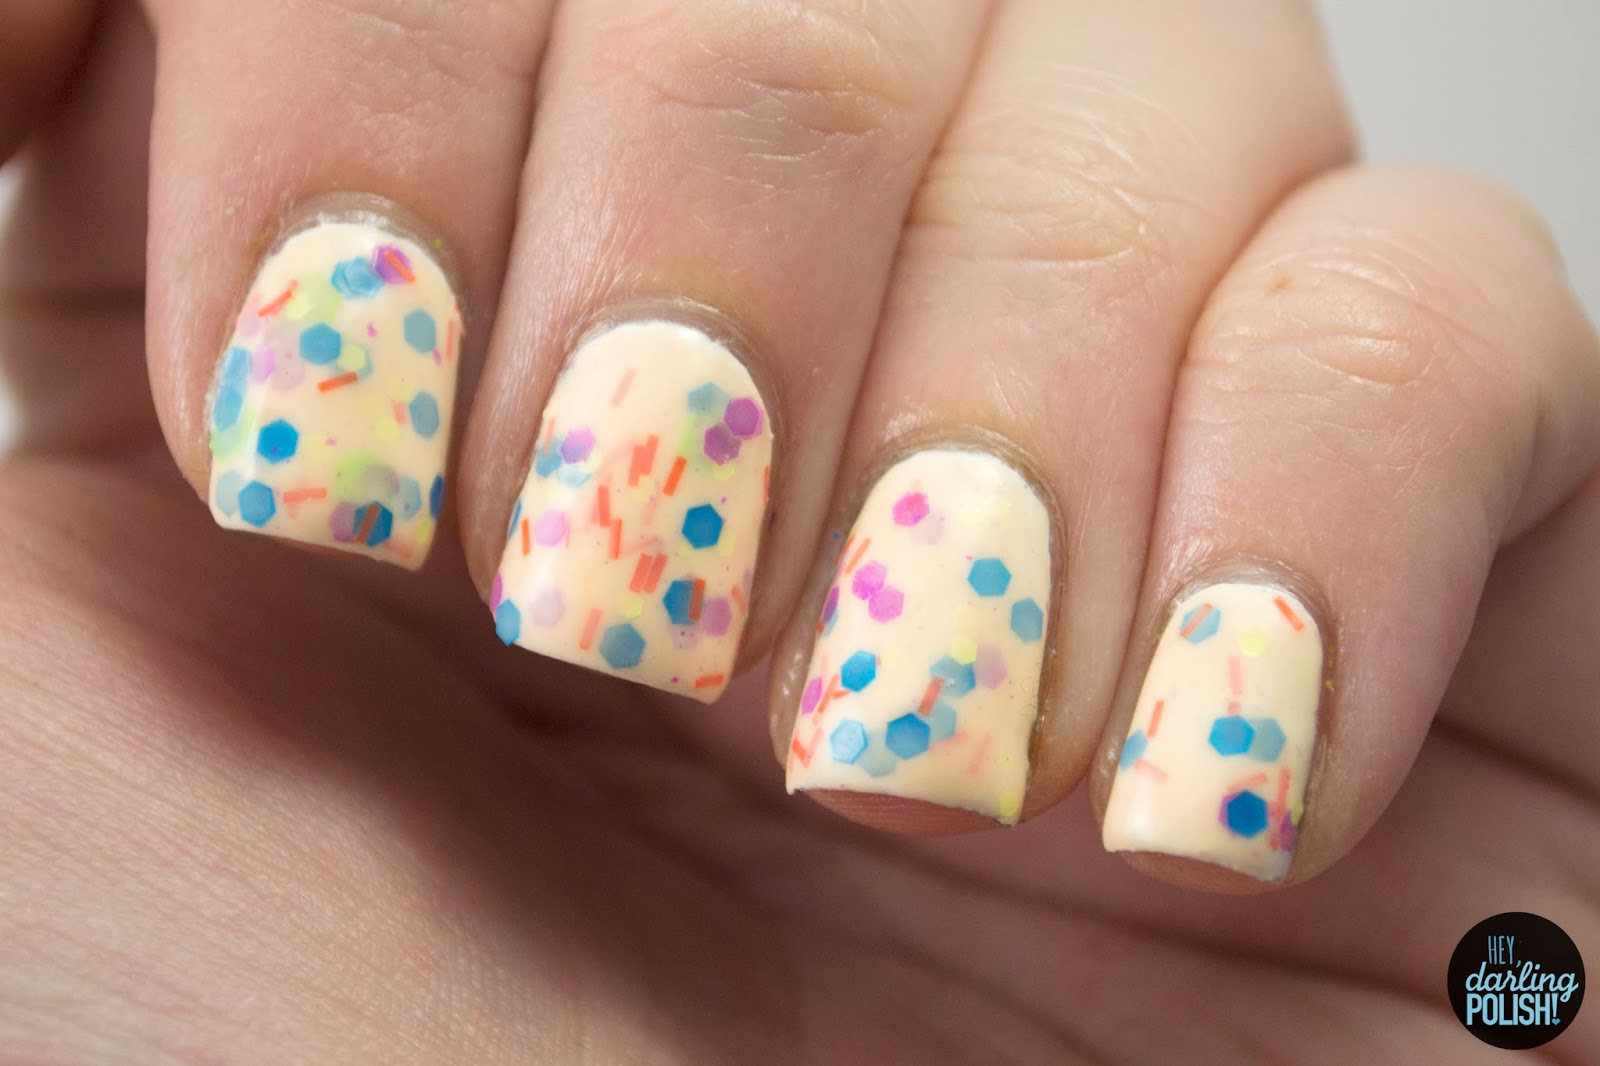 totally 80's, neon, white, nails, nail polish, indie, indie polish, sick lacquers, glitter, matter glitter, hey darling polish,